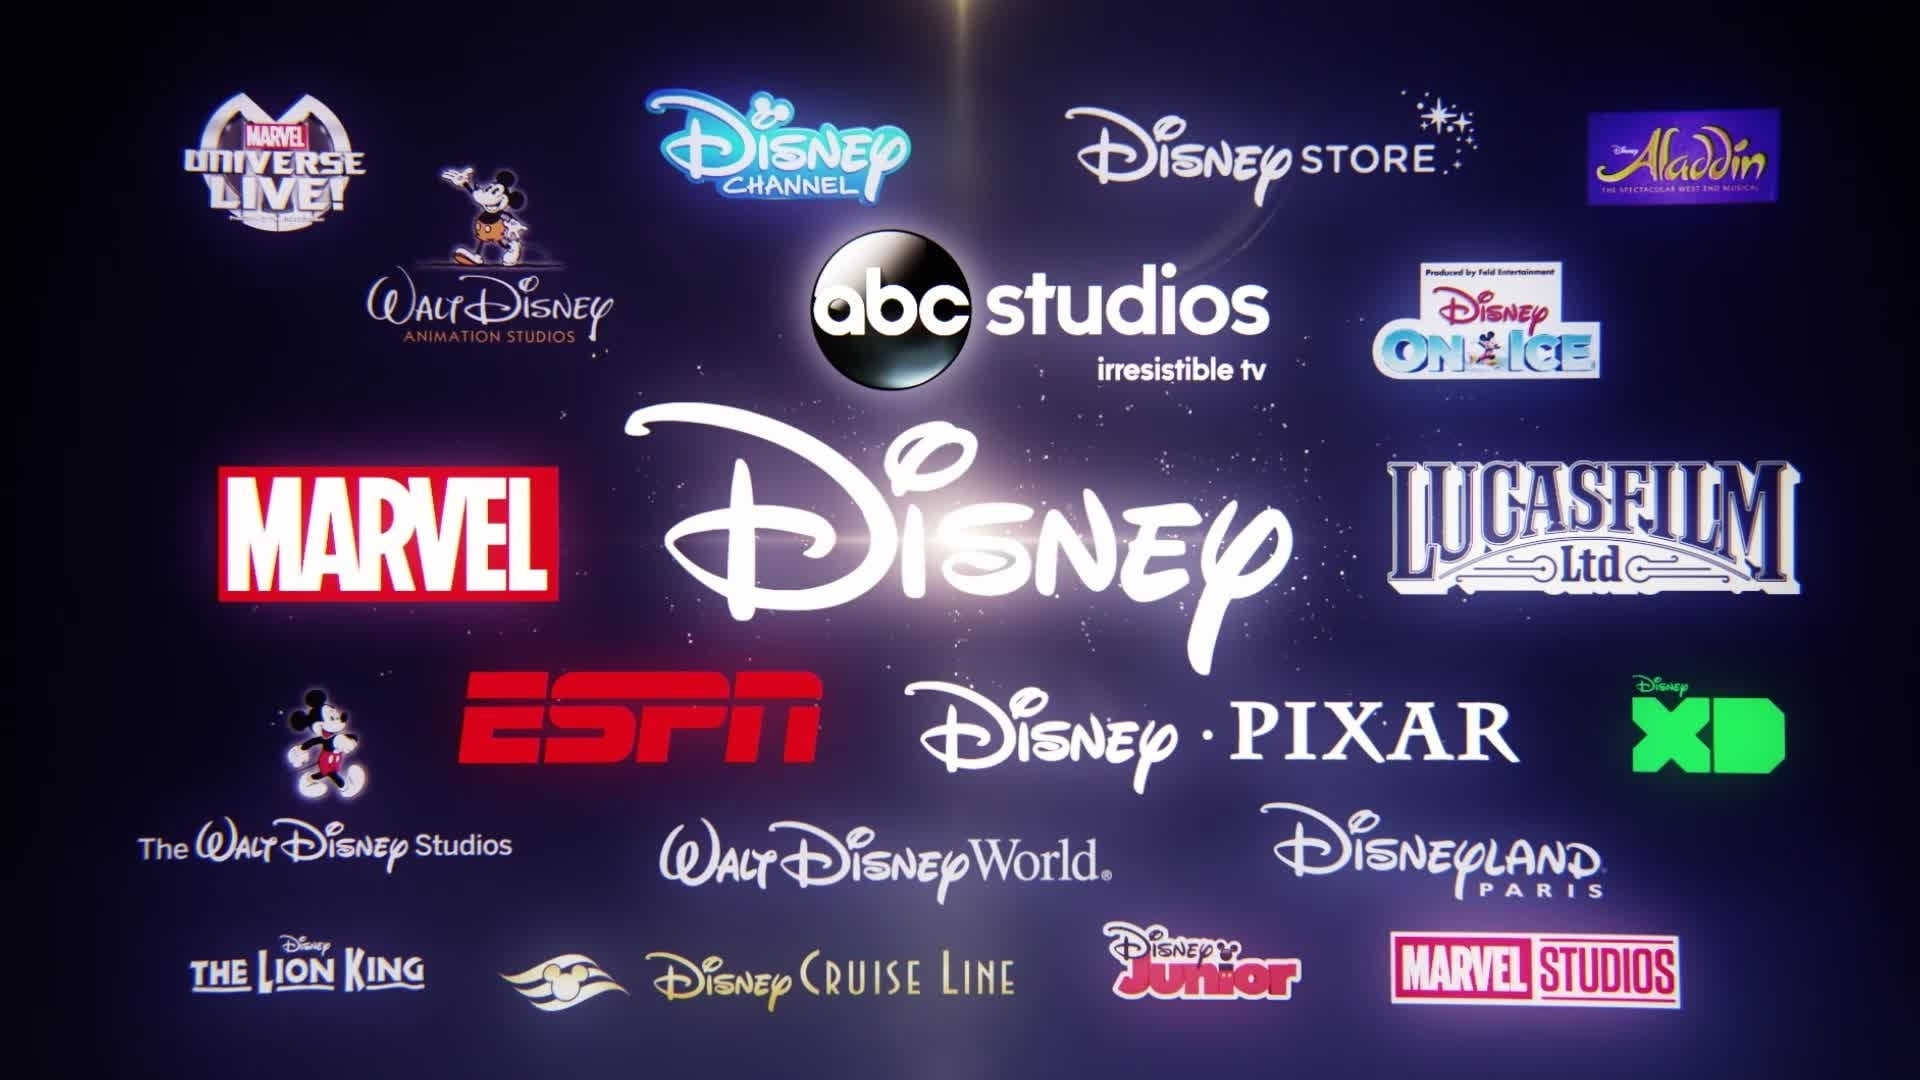 About Us - The Walt Disney Family of Companies Video (IT)